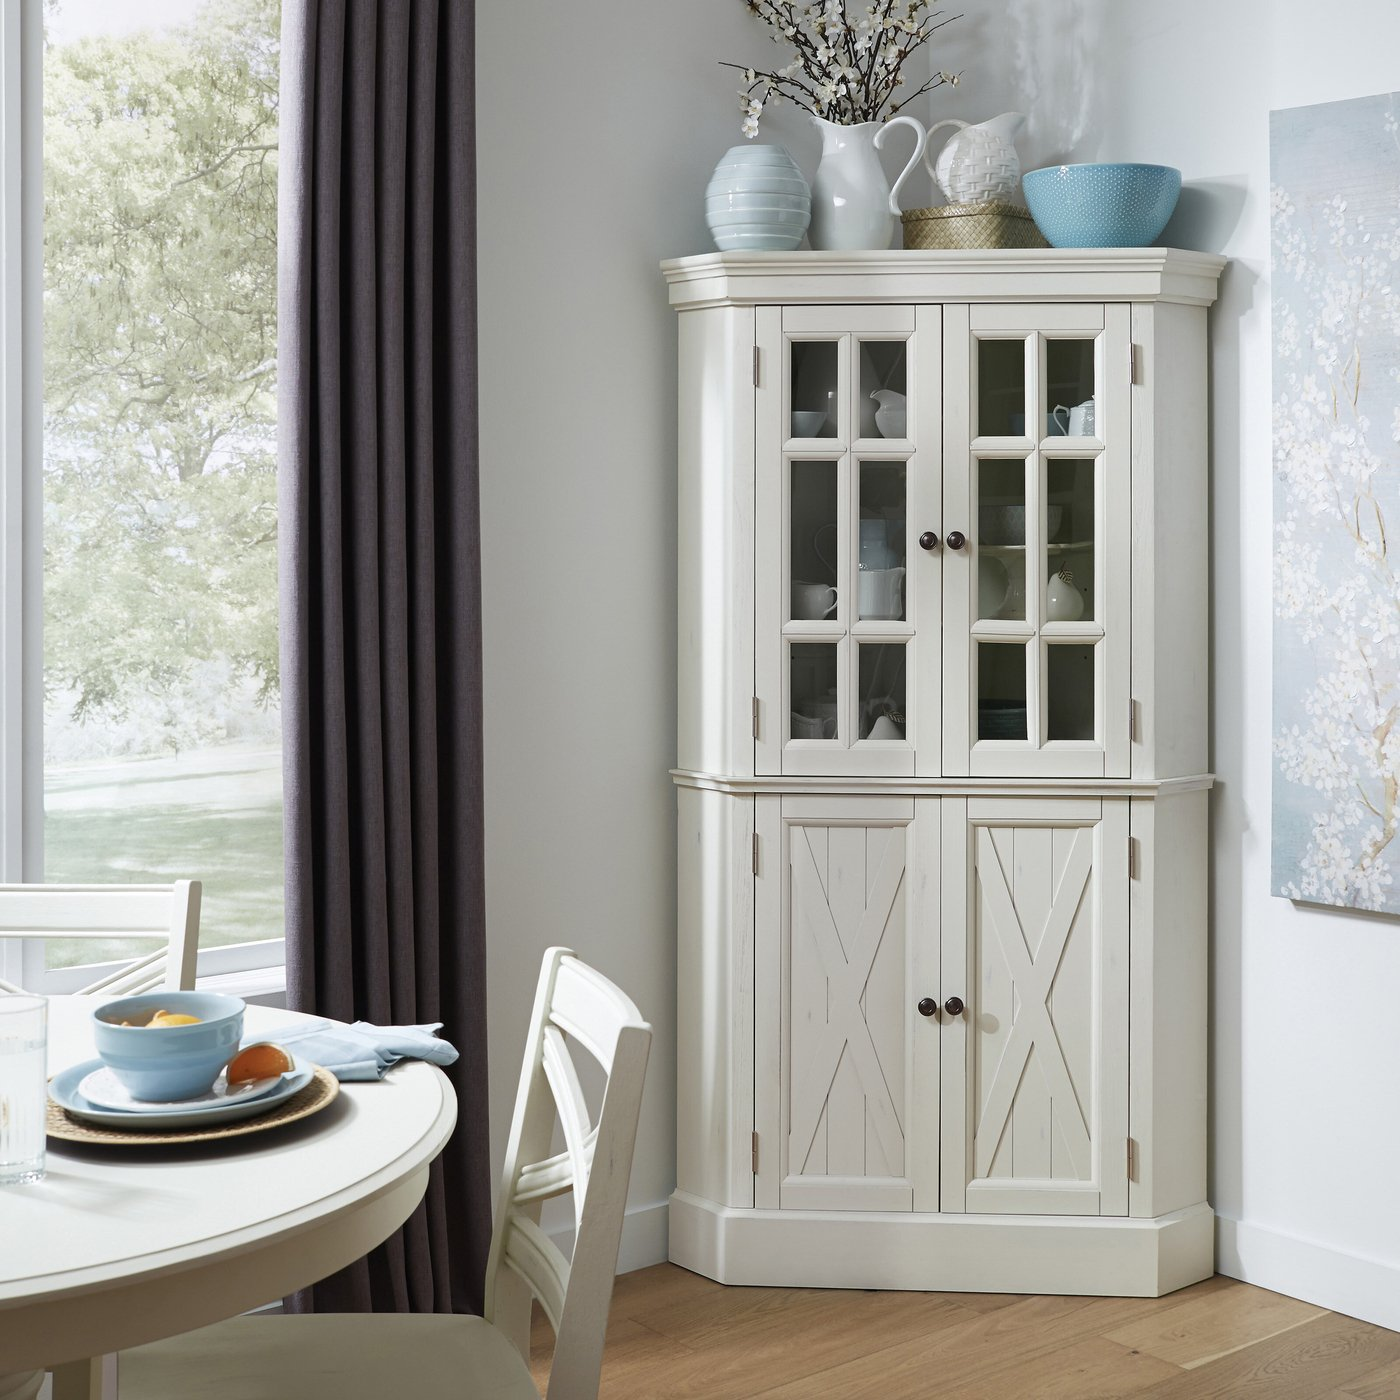 10 Reasons To Spice Up Your Kitchen With A Corner Cabinet Foter